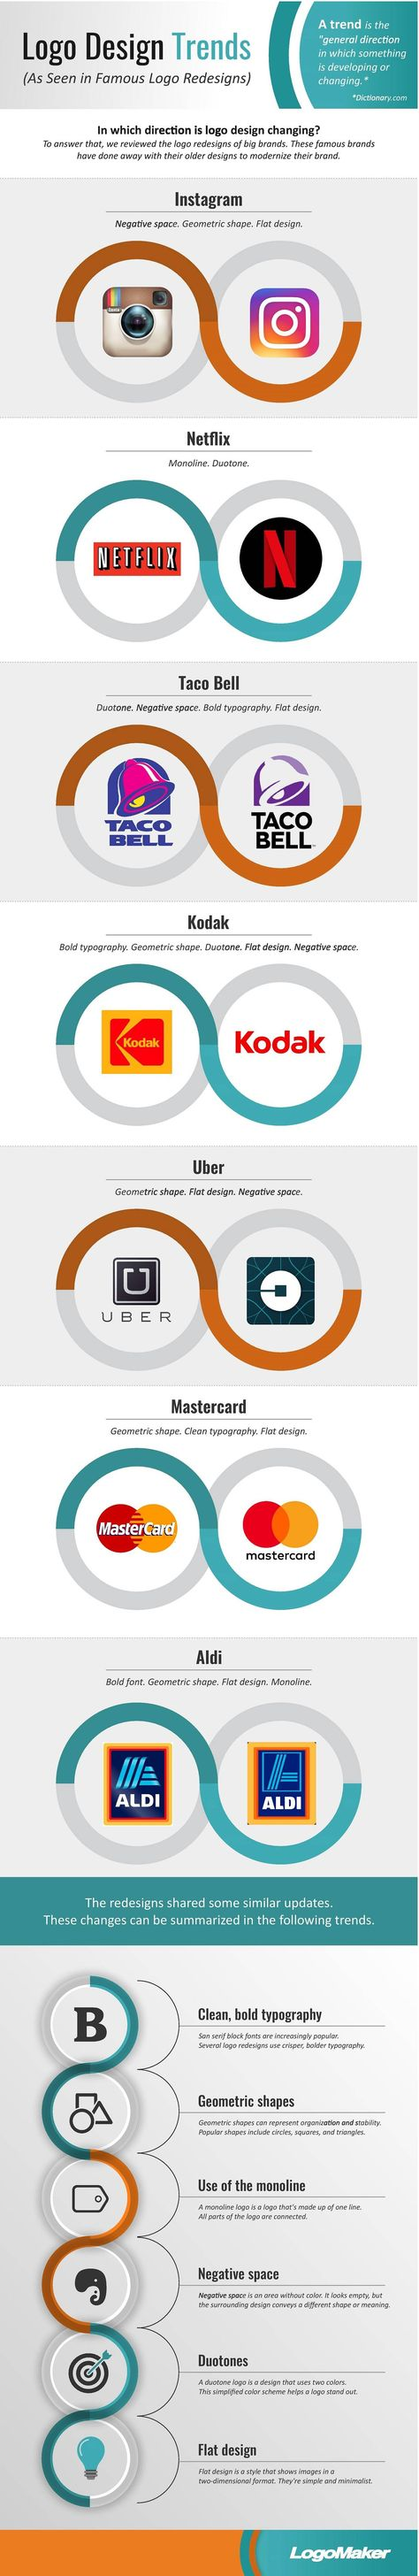 Logo Design Trends (As Seen in Famous Logo Redesigns) #Infographic